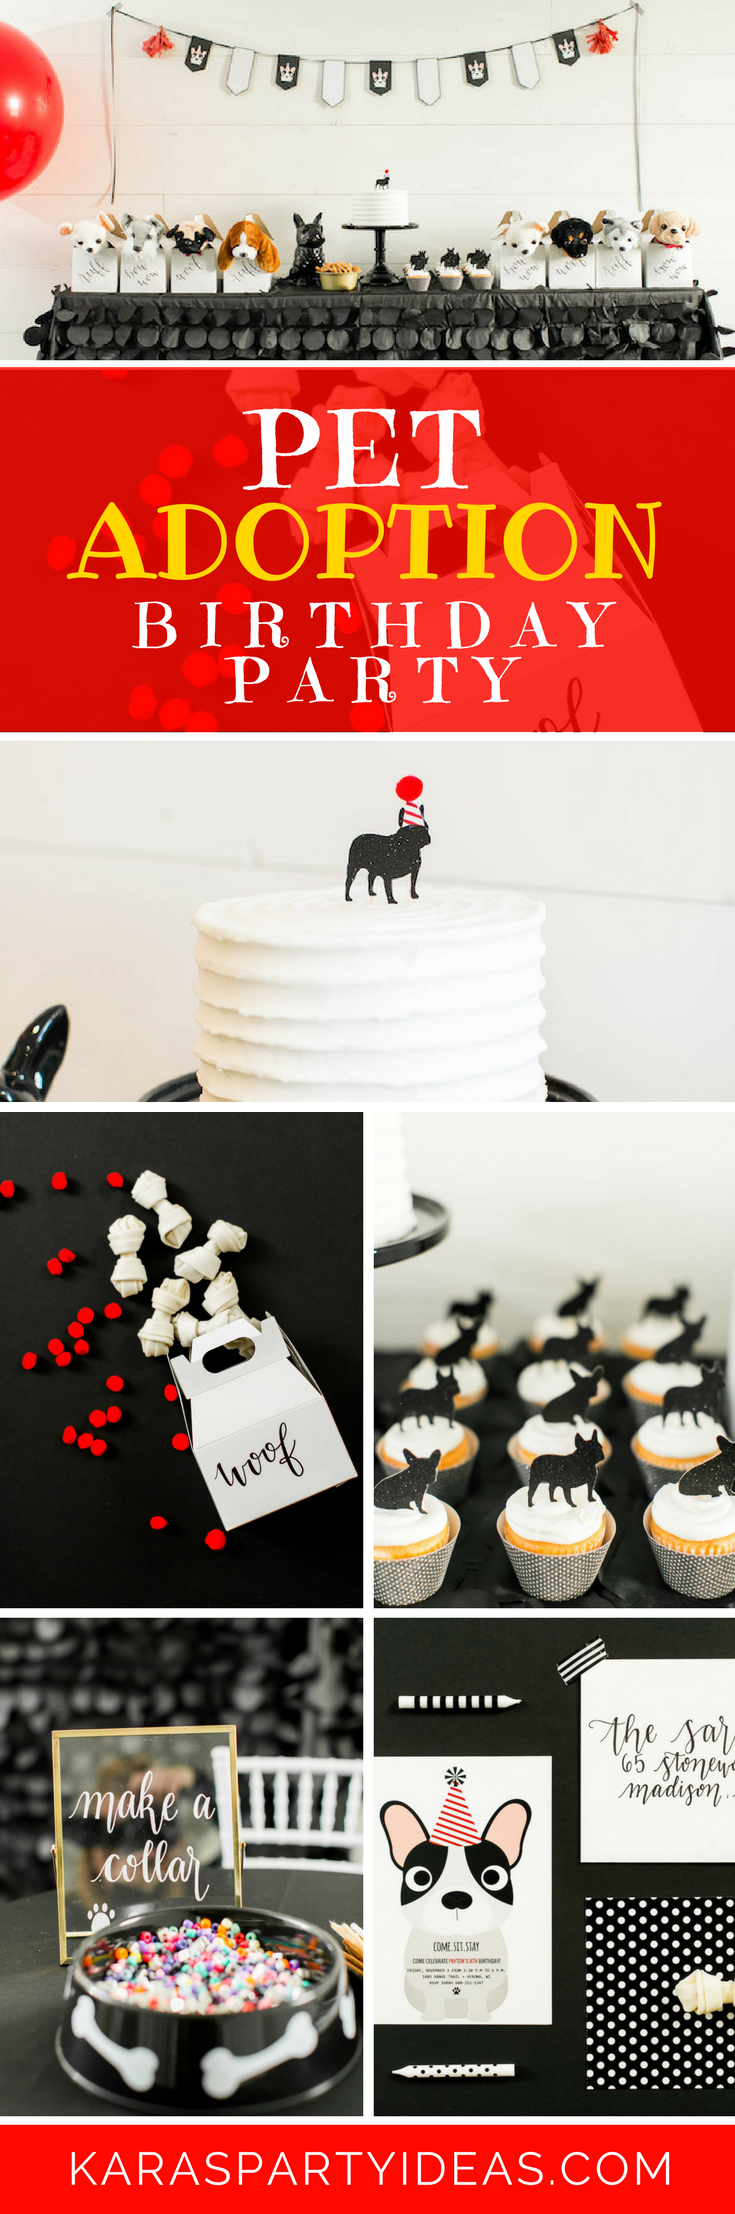 Pet Adoption Birthday Party via Kara's Party Ideas - KarasPartyIdeas.com (1)